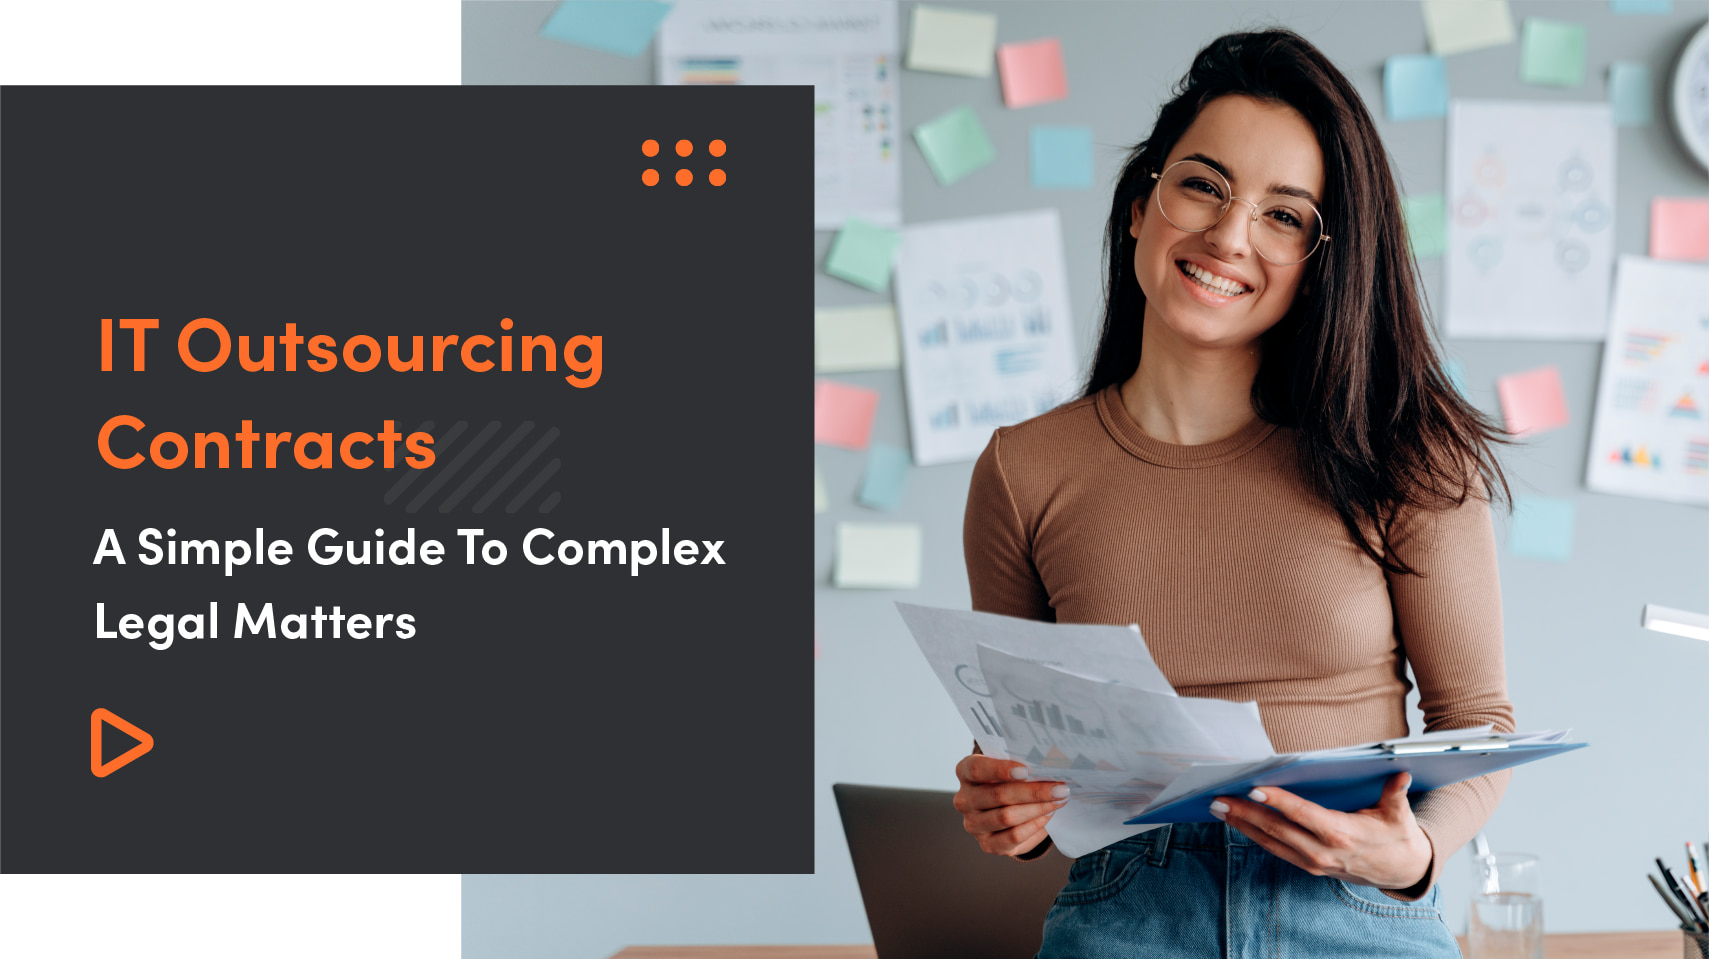 IT Outsourcing Contracts | A Simple Guide To Complex Legal Matters